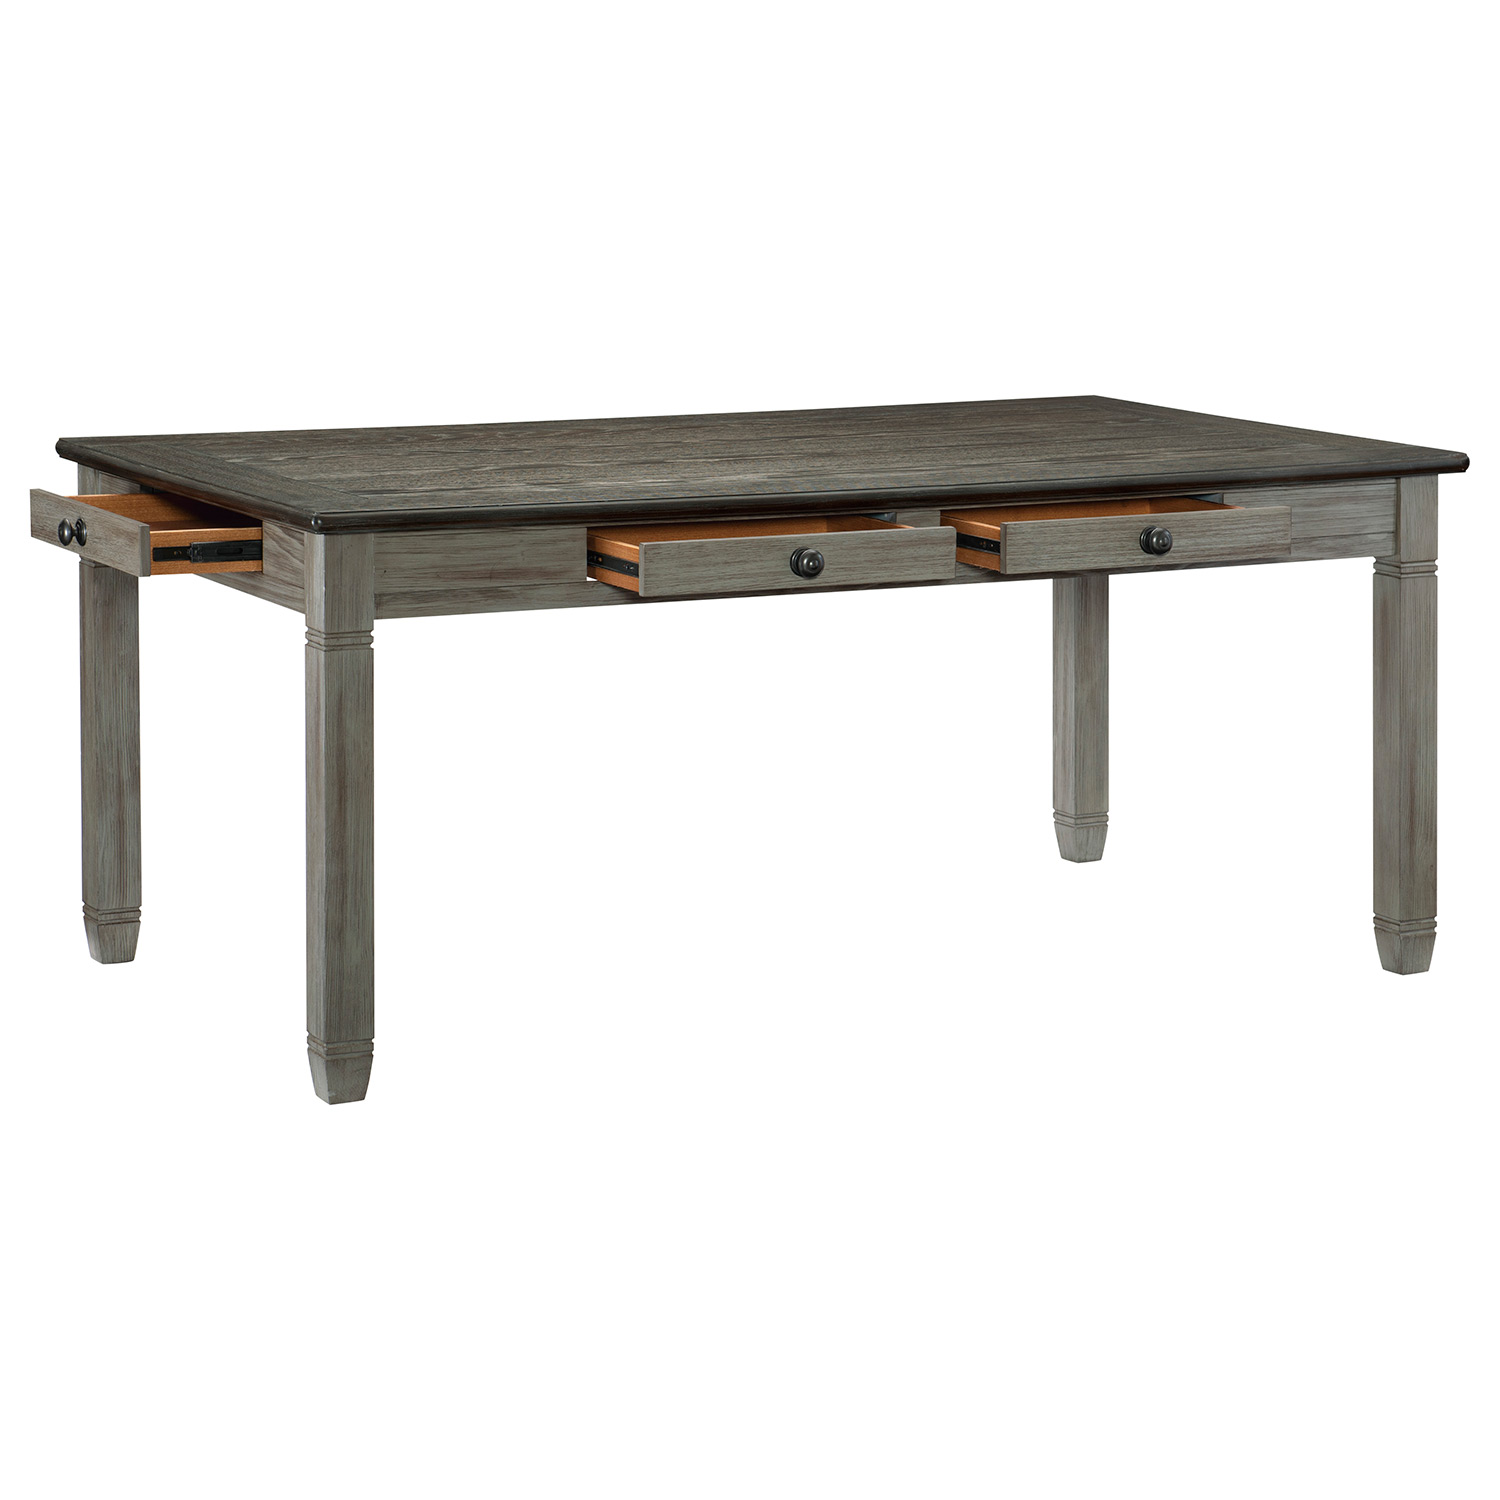 Homelegance Granby Dining Table - Antique Gray and Coffee